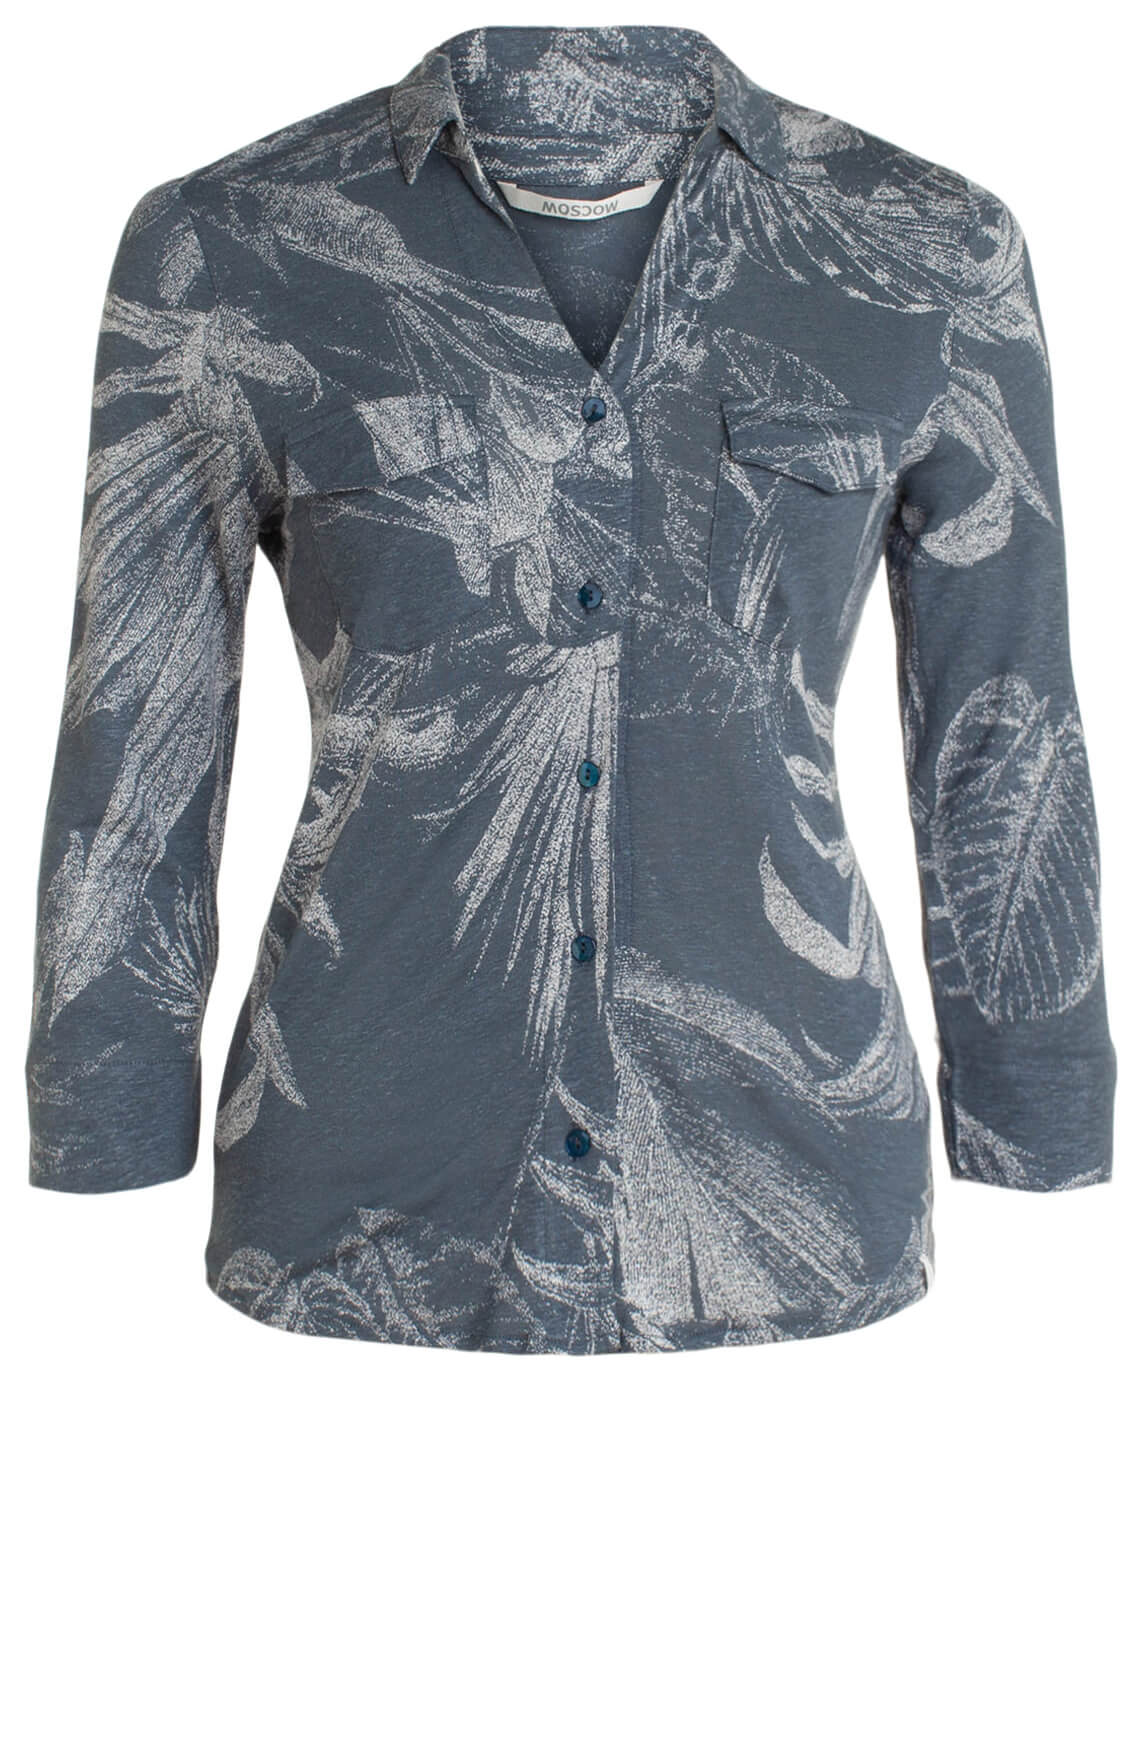 Moscow Dames Blouse met bladprint Blauw